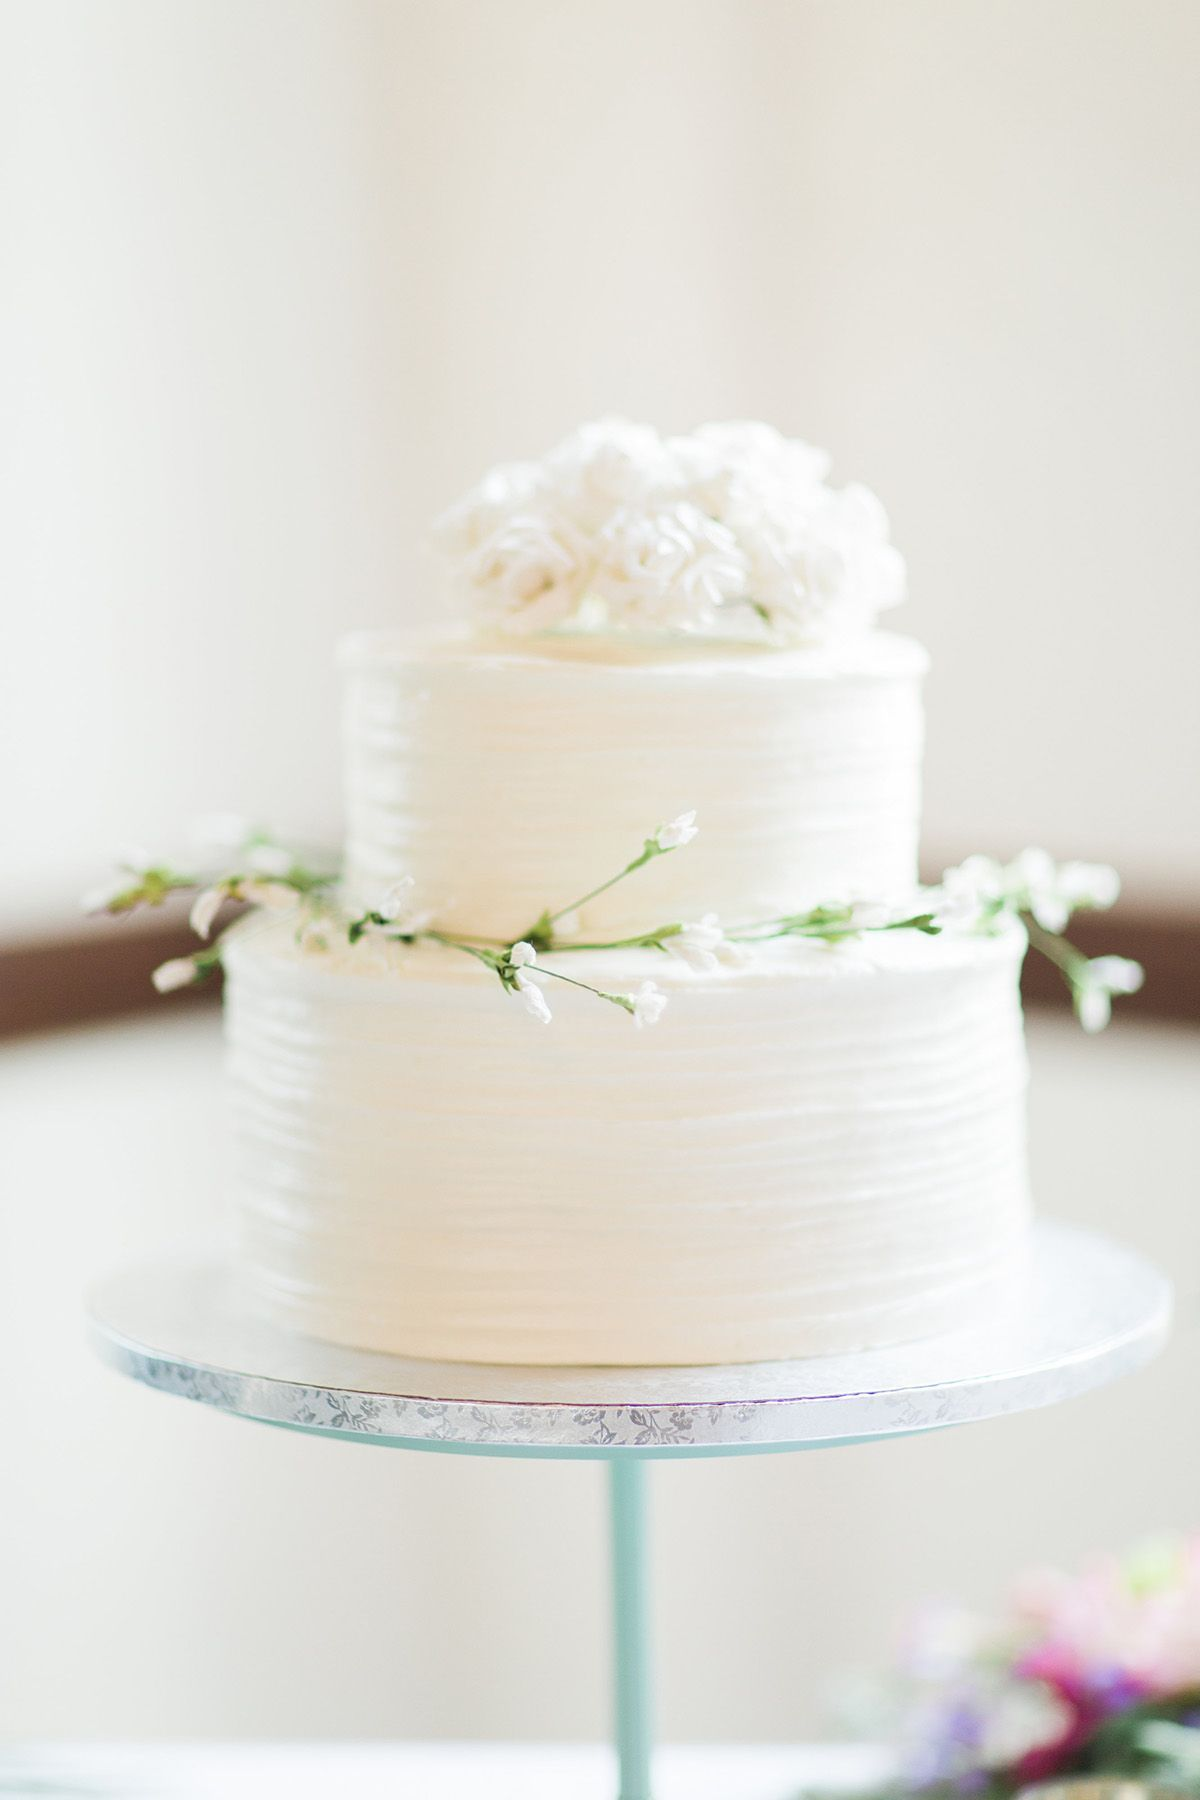 Simple Small White Wedding Cake Photo By Bricibene Com Wedding Cake Cost Publix Wedding Cake Simple Wedding Cake